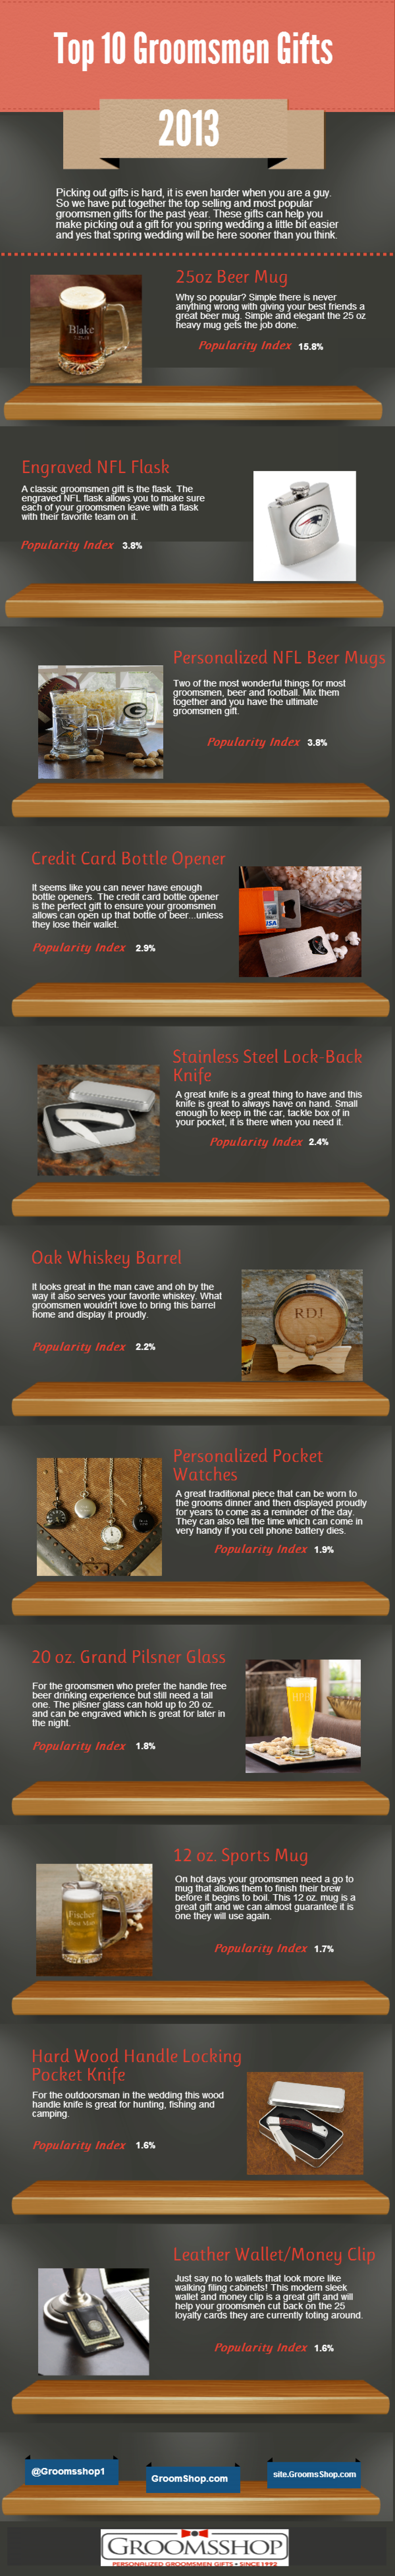 Top Groomsmen Gifts of 2013 Infographic